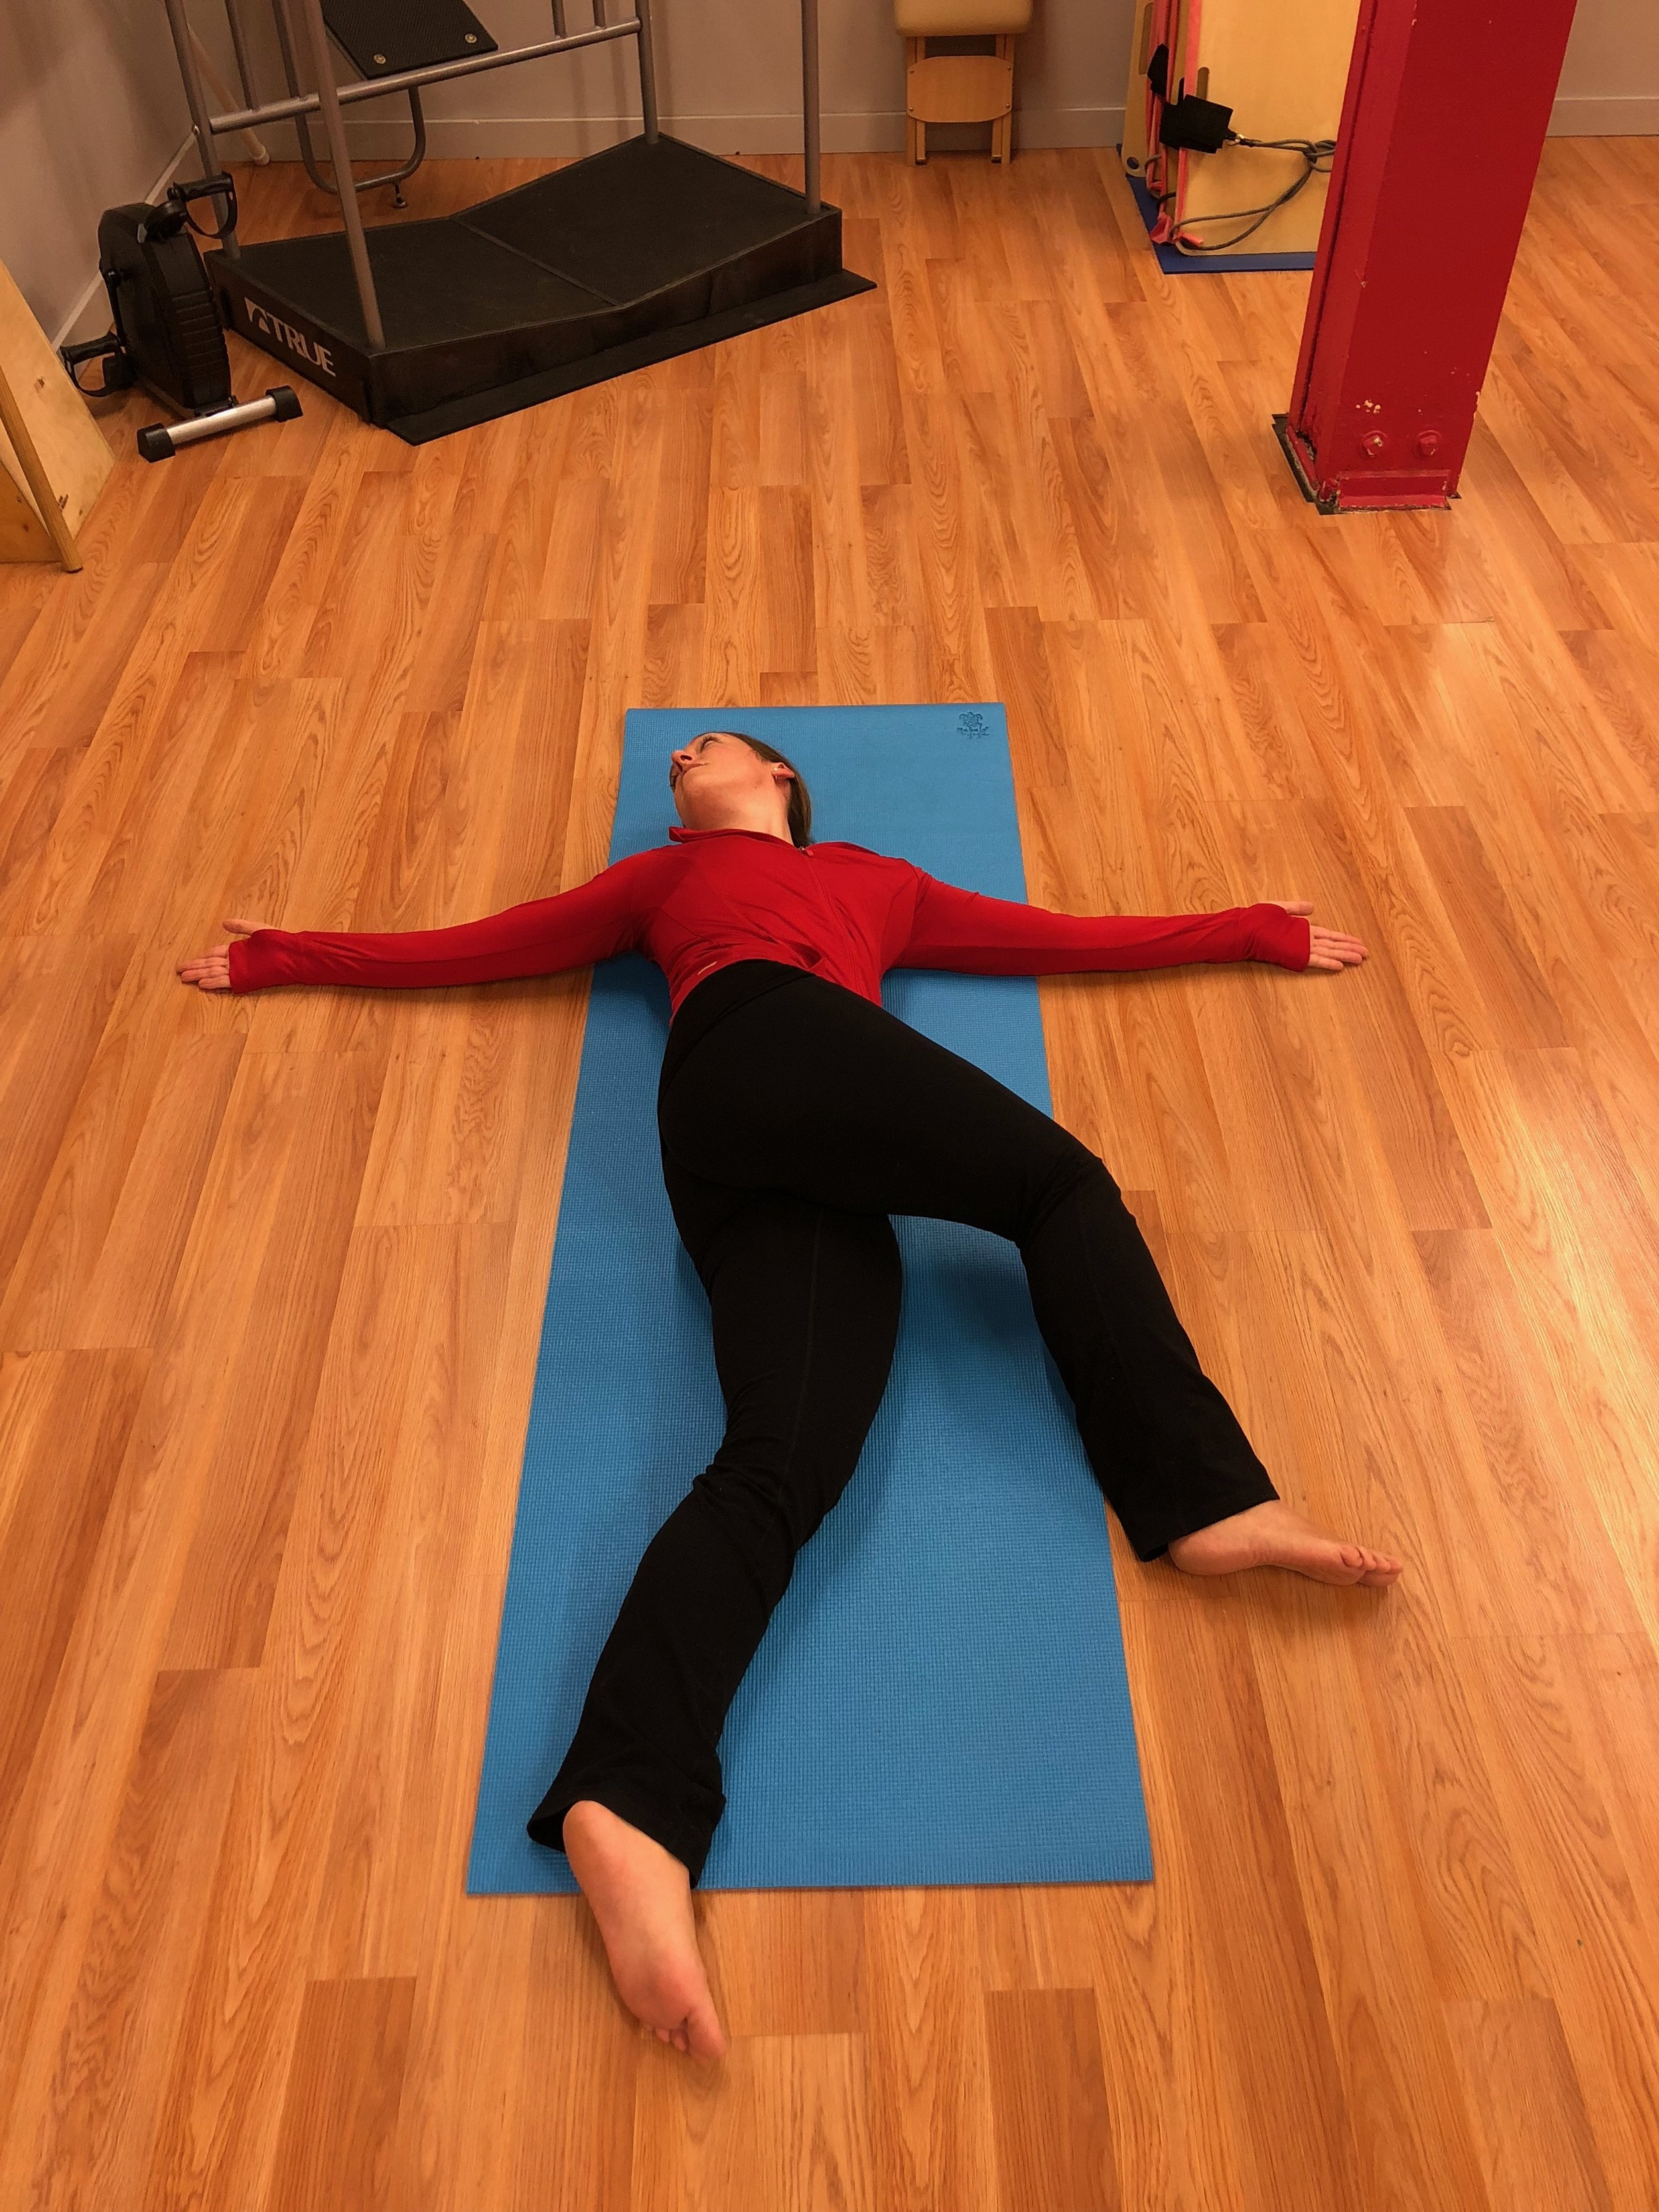 #5 Thoracic Rotations: Start in sidelying with your arms extended in a prayer position. Rotate your top hand toward the opposite side, following it with your gaze. Inhale deeply as you do this and feel the front of your body opening. Repeat 10 times on each side.